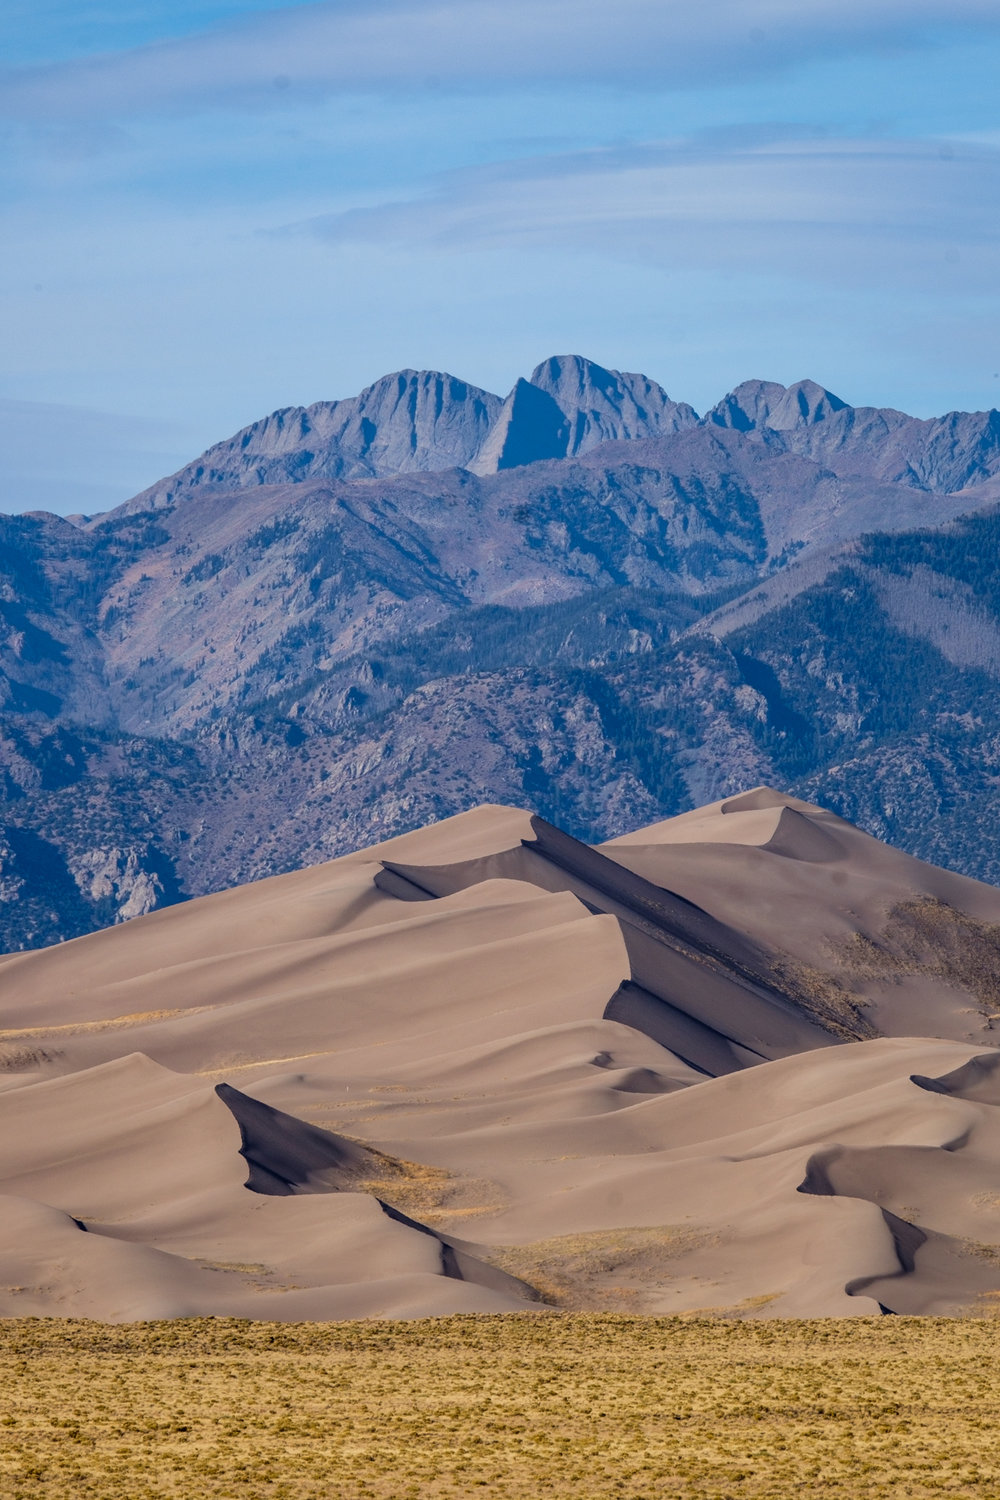 The dunes provide a stark contract to the Sangra de Cristo mountains as a backdrop.